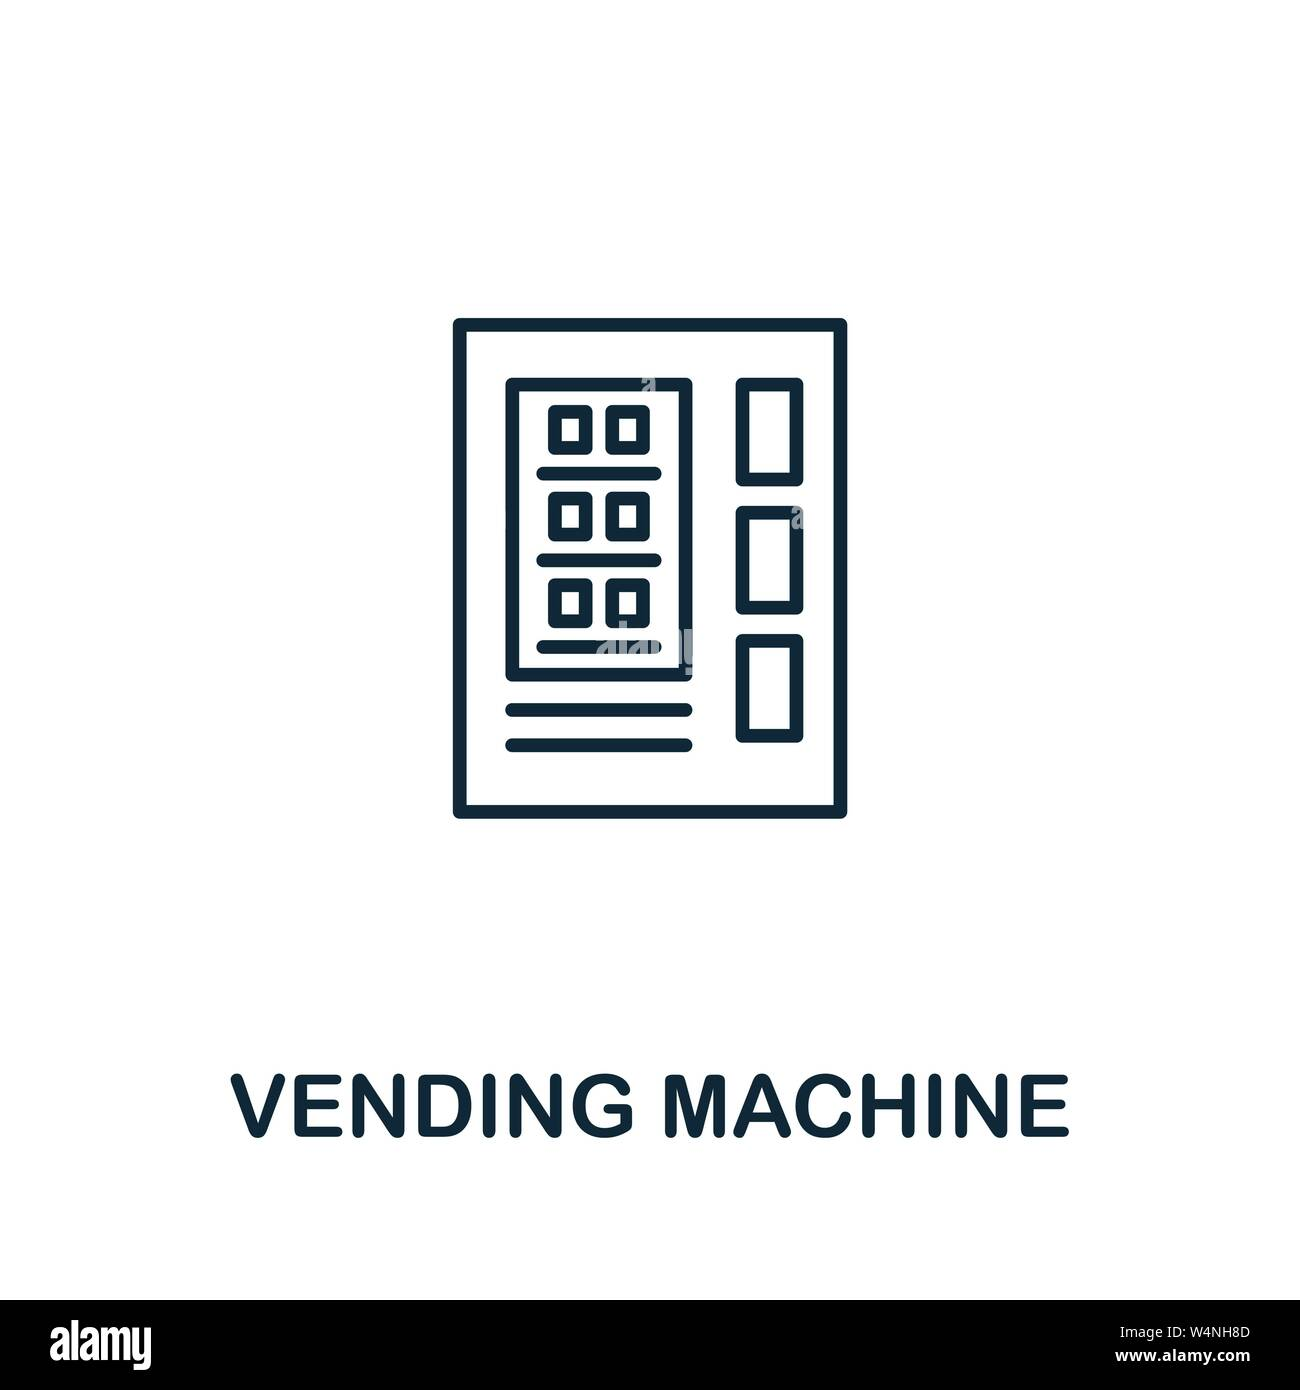 Vending Machine outline icon. Thin style design from city elements icons collection. Pixel perfect symbol of vending machine icon. Web design, apps Stock Vector